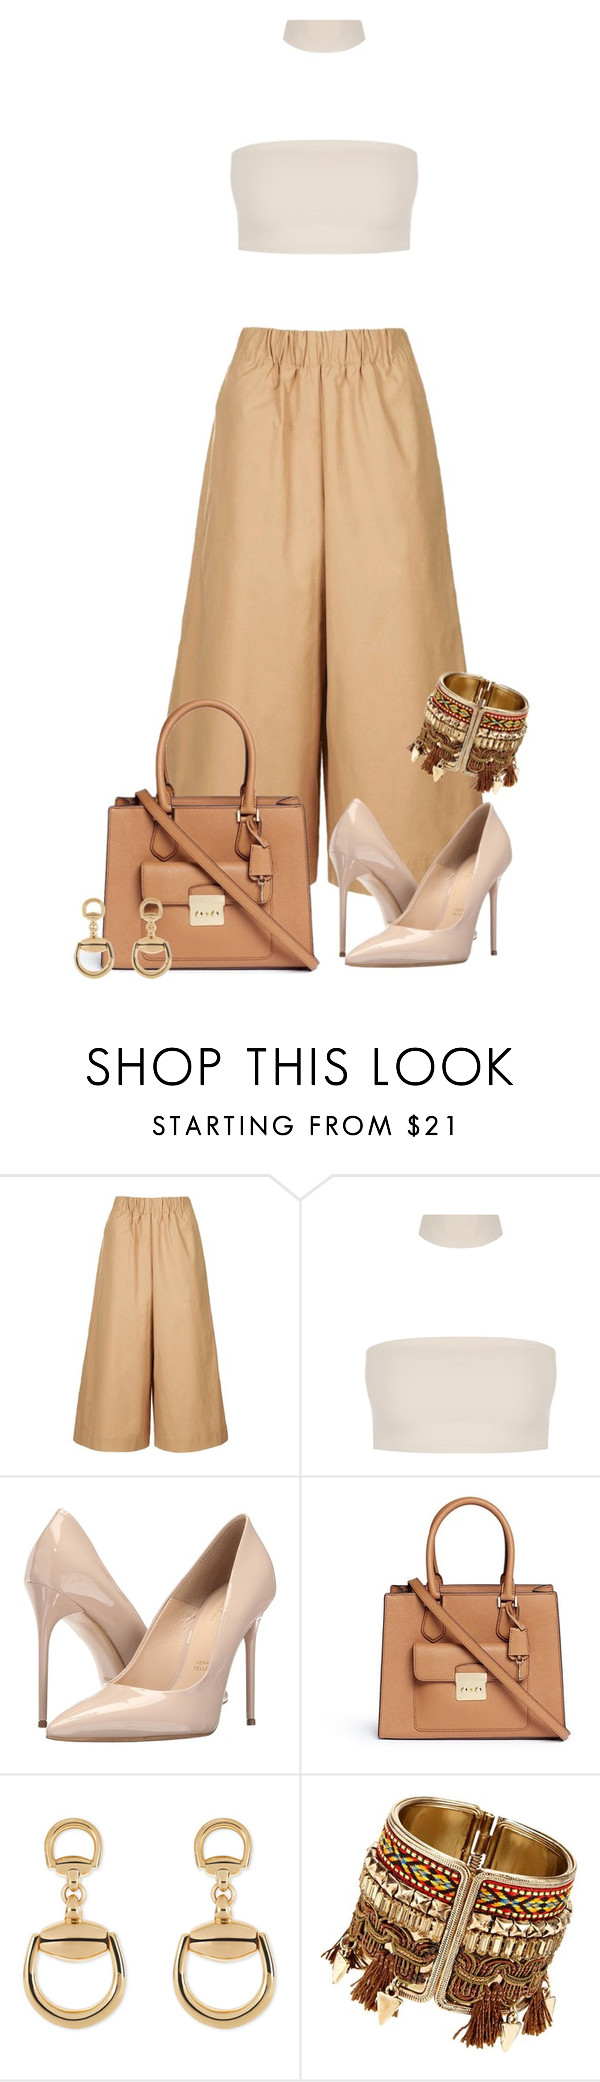 """3"" by silverboybeth on Polyvore featuring Topshop, Massimo Matteo, Michael Kors and Gucci"